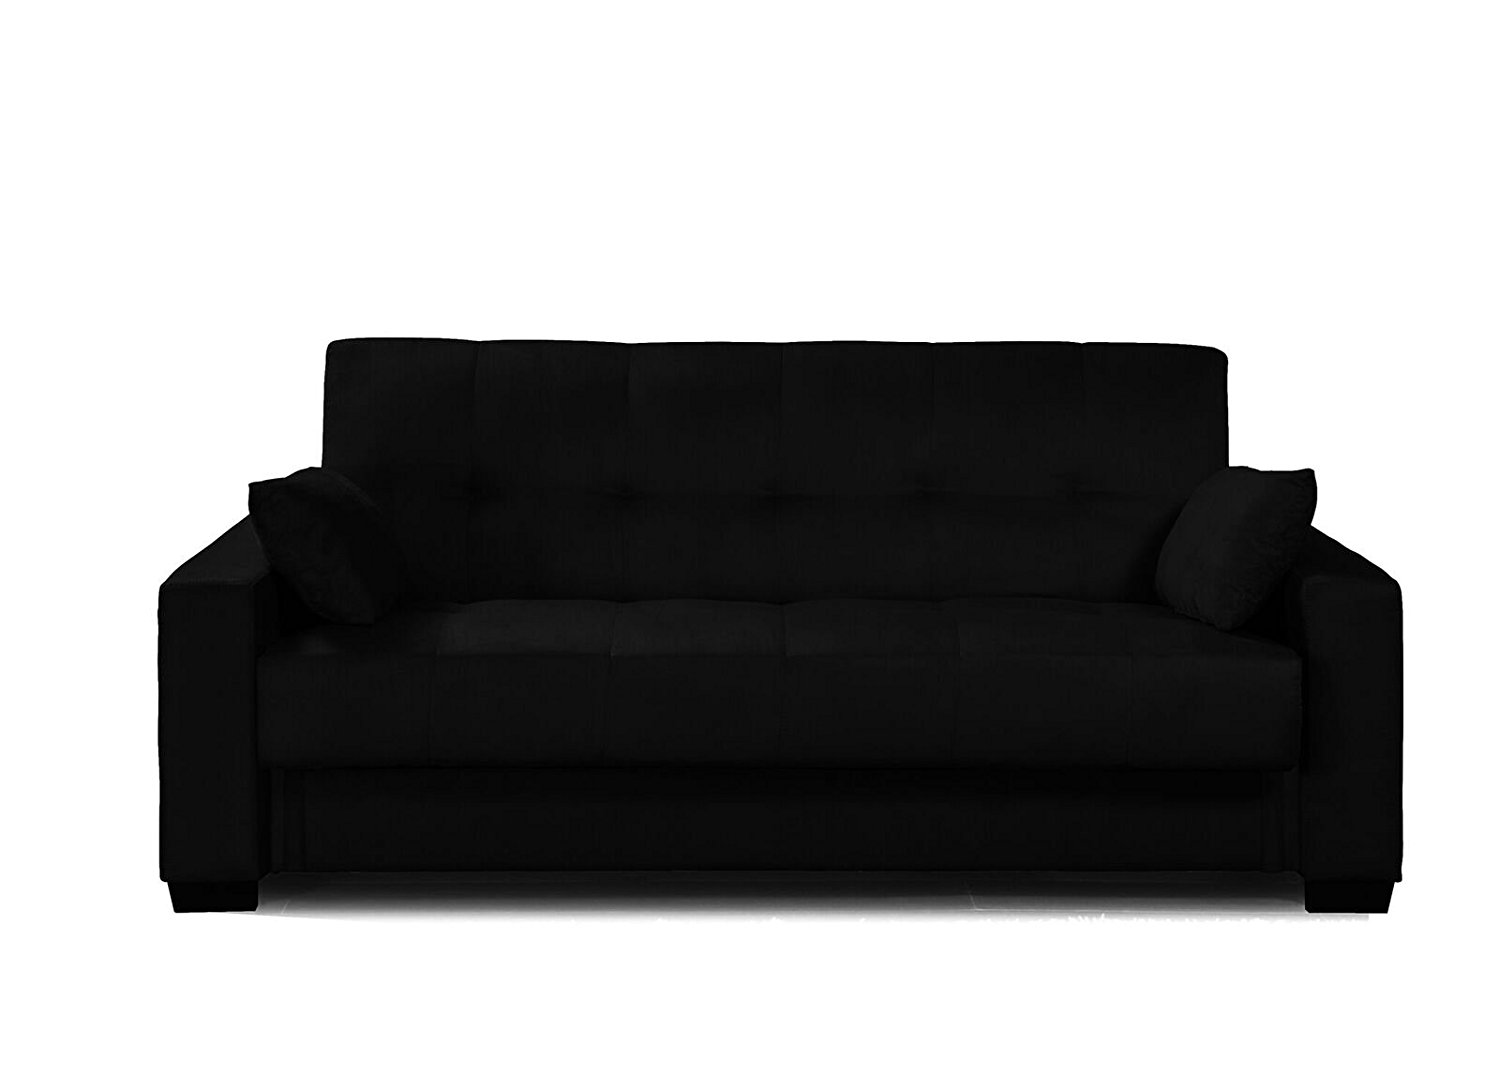 quality sofas for less chaise sofa sleeper sectional microfiber bed and lounger with storage black